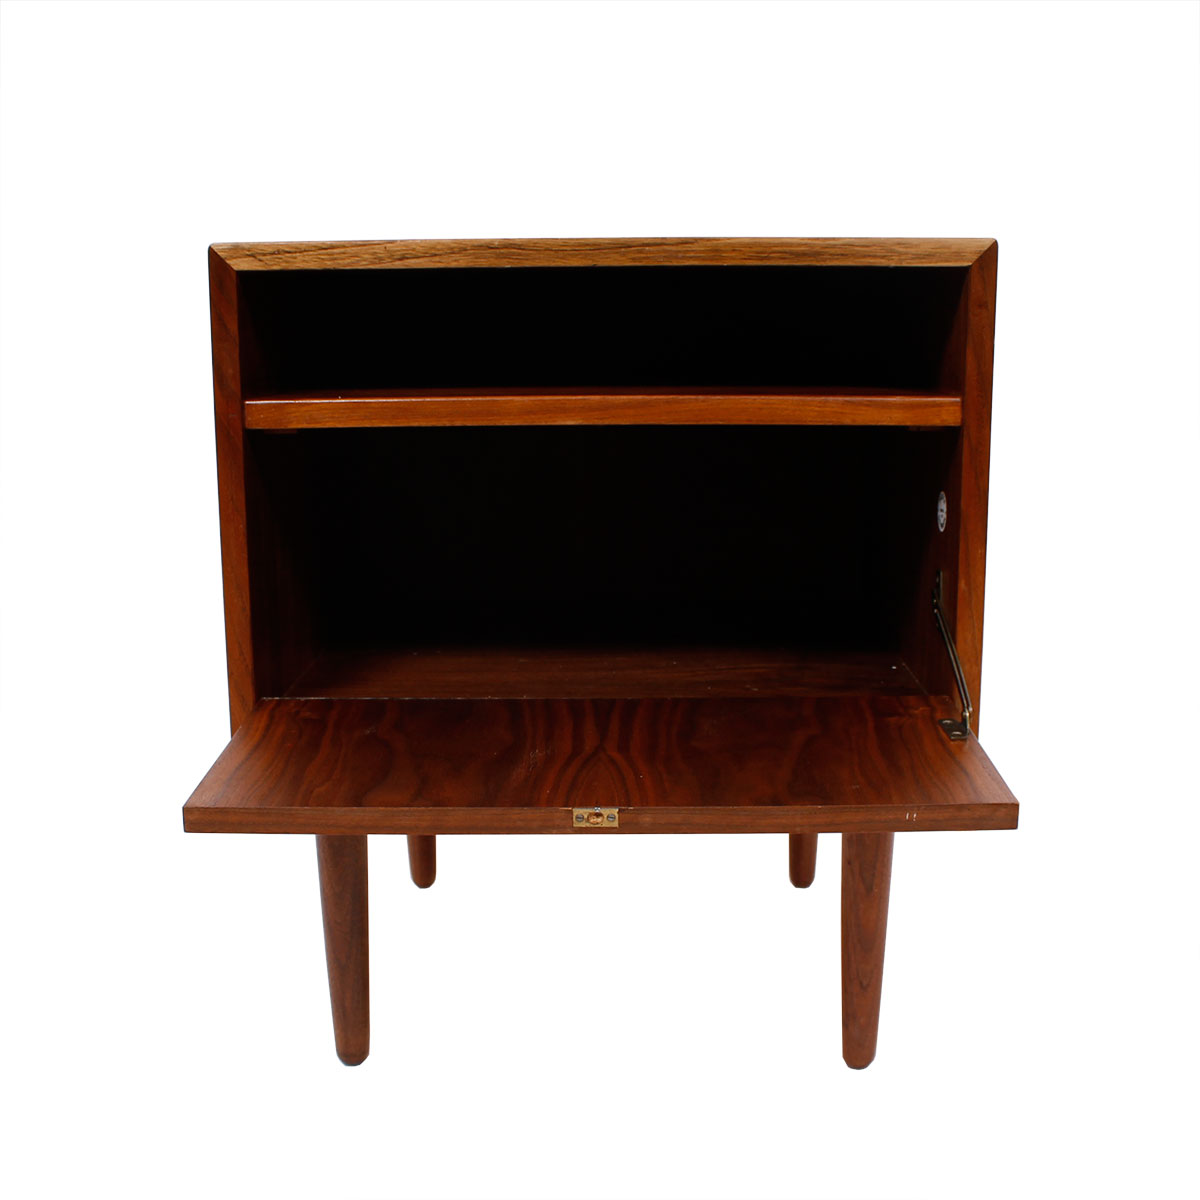 Walnut Danish Modern Accent Table – Night Stand by Falster